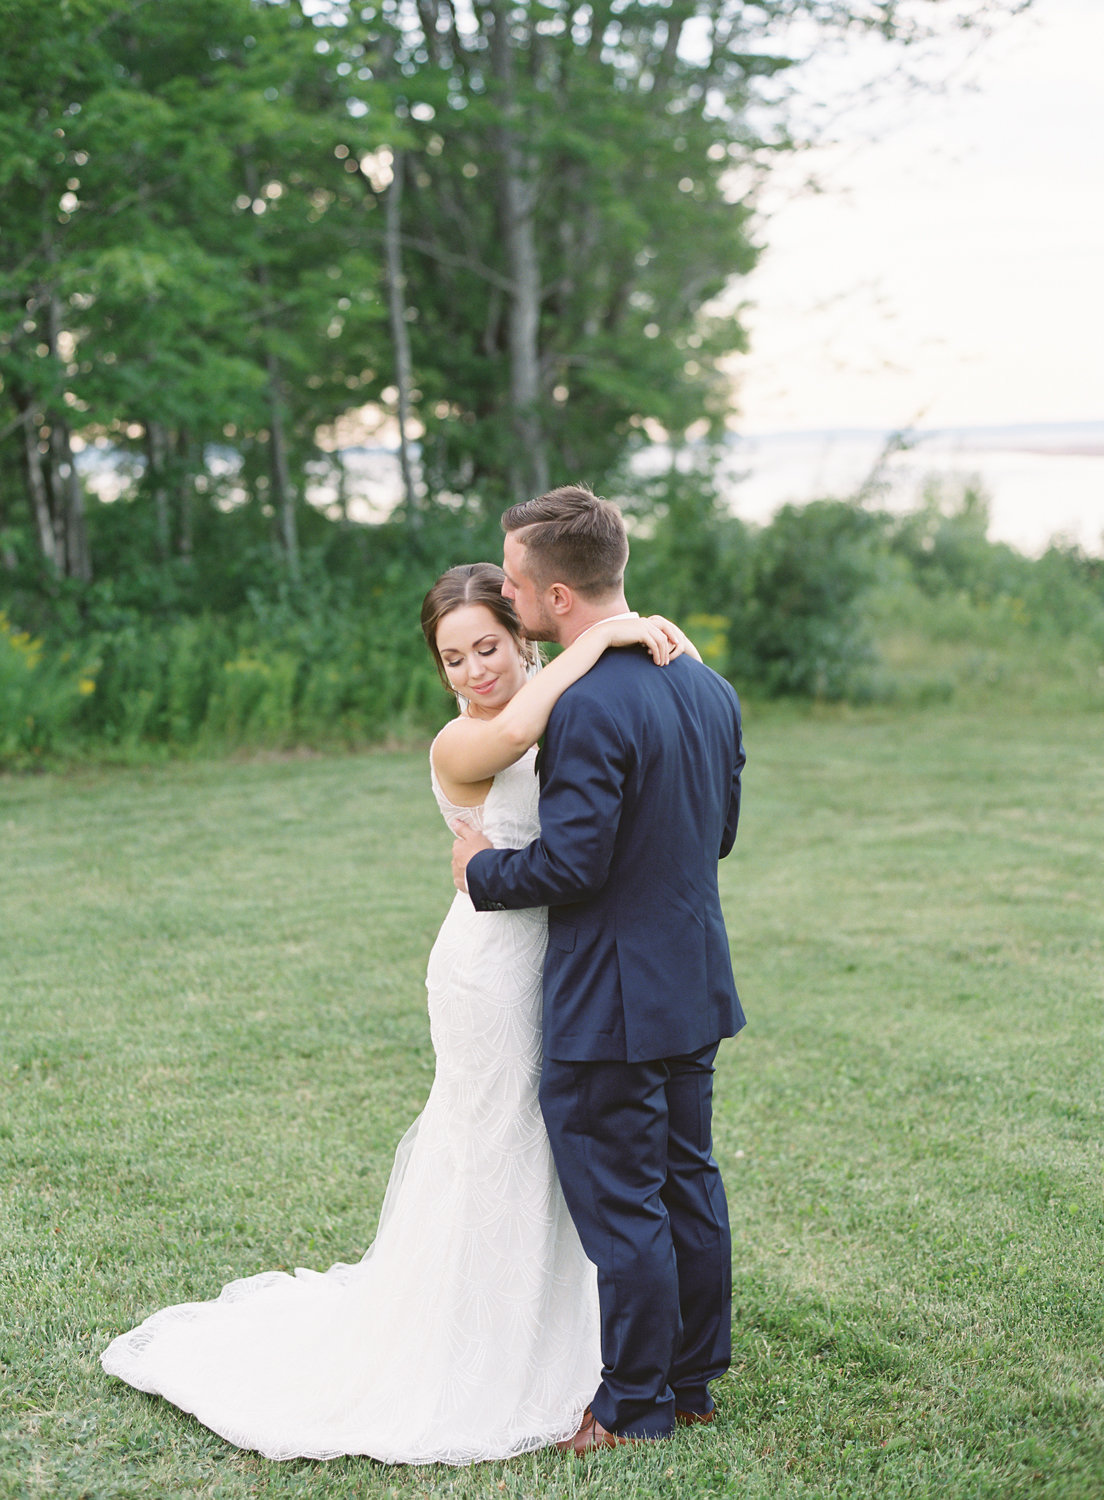 Jacqueline Anne Photography - Nova Scotia Backyard Wedding-85